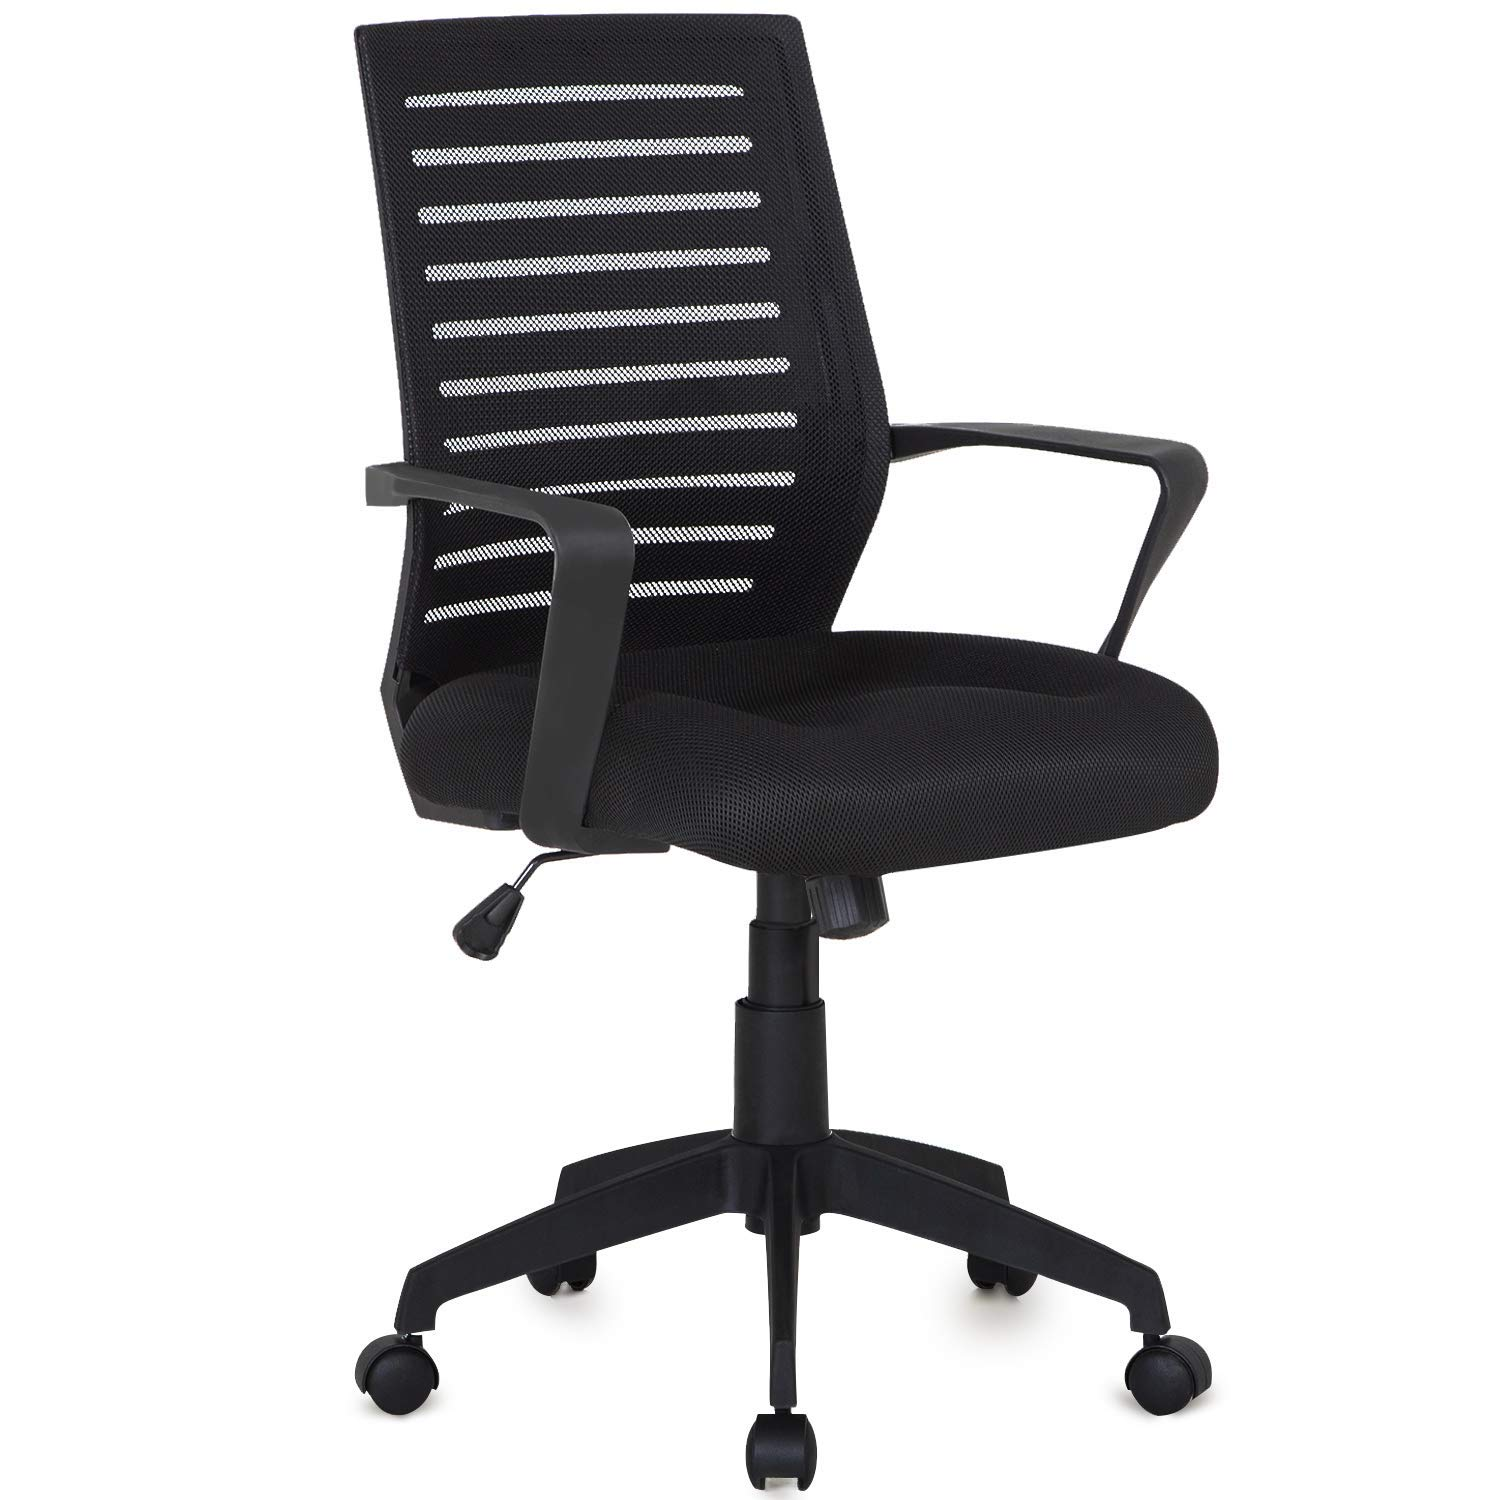 VECELO Premium Mesh Chair for Task / Desk / Home Office Work - Black